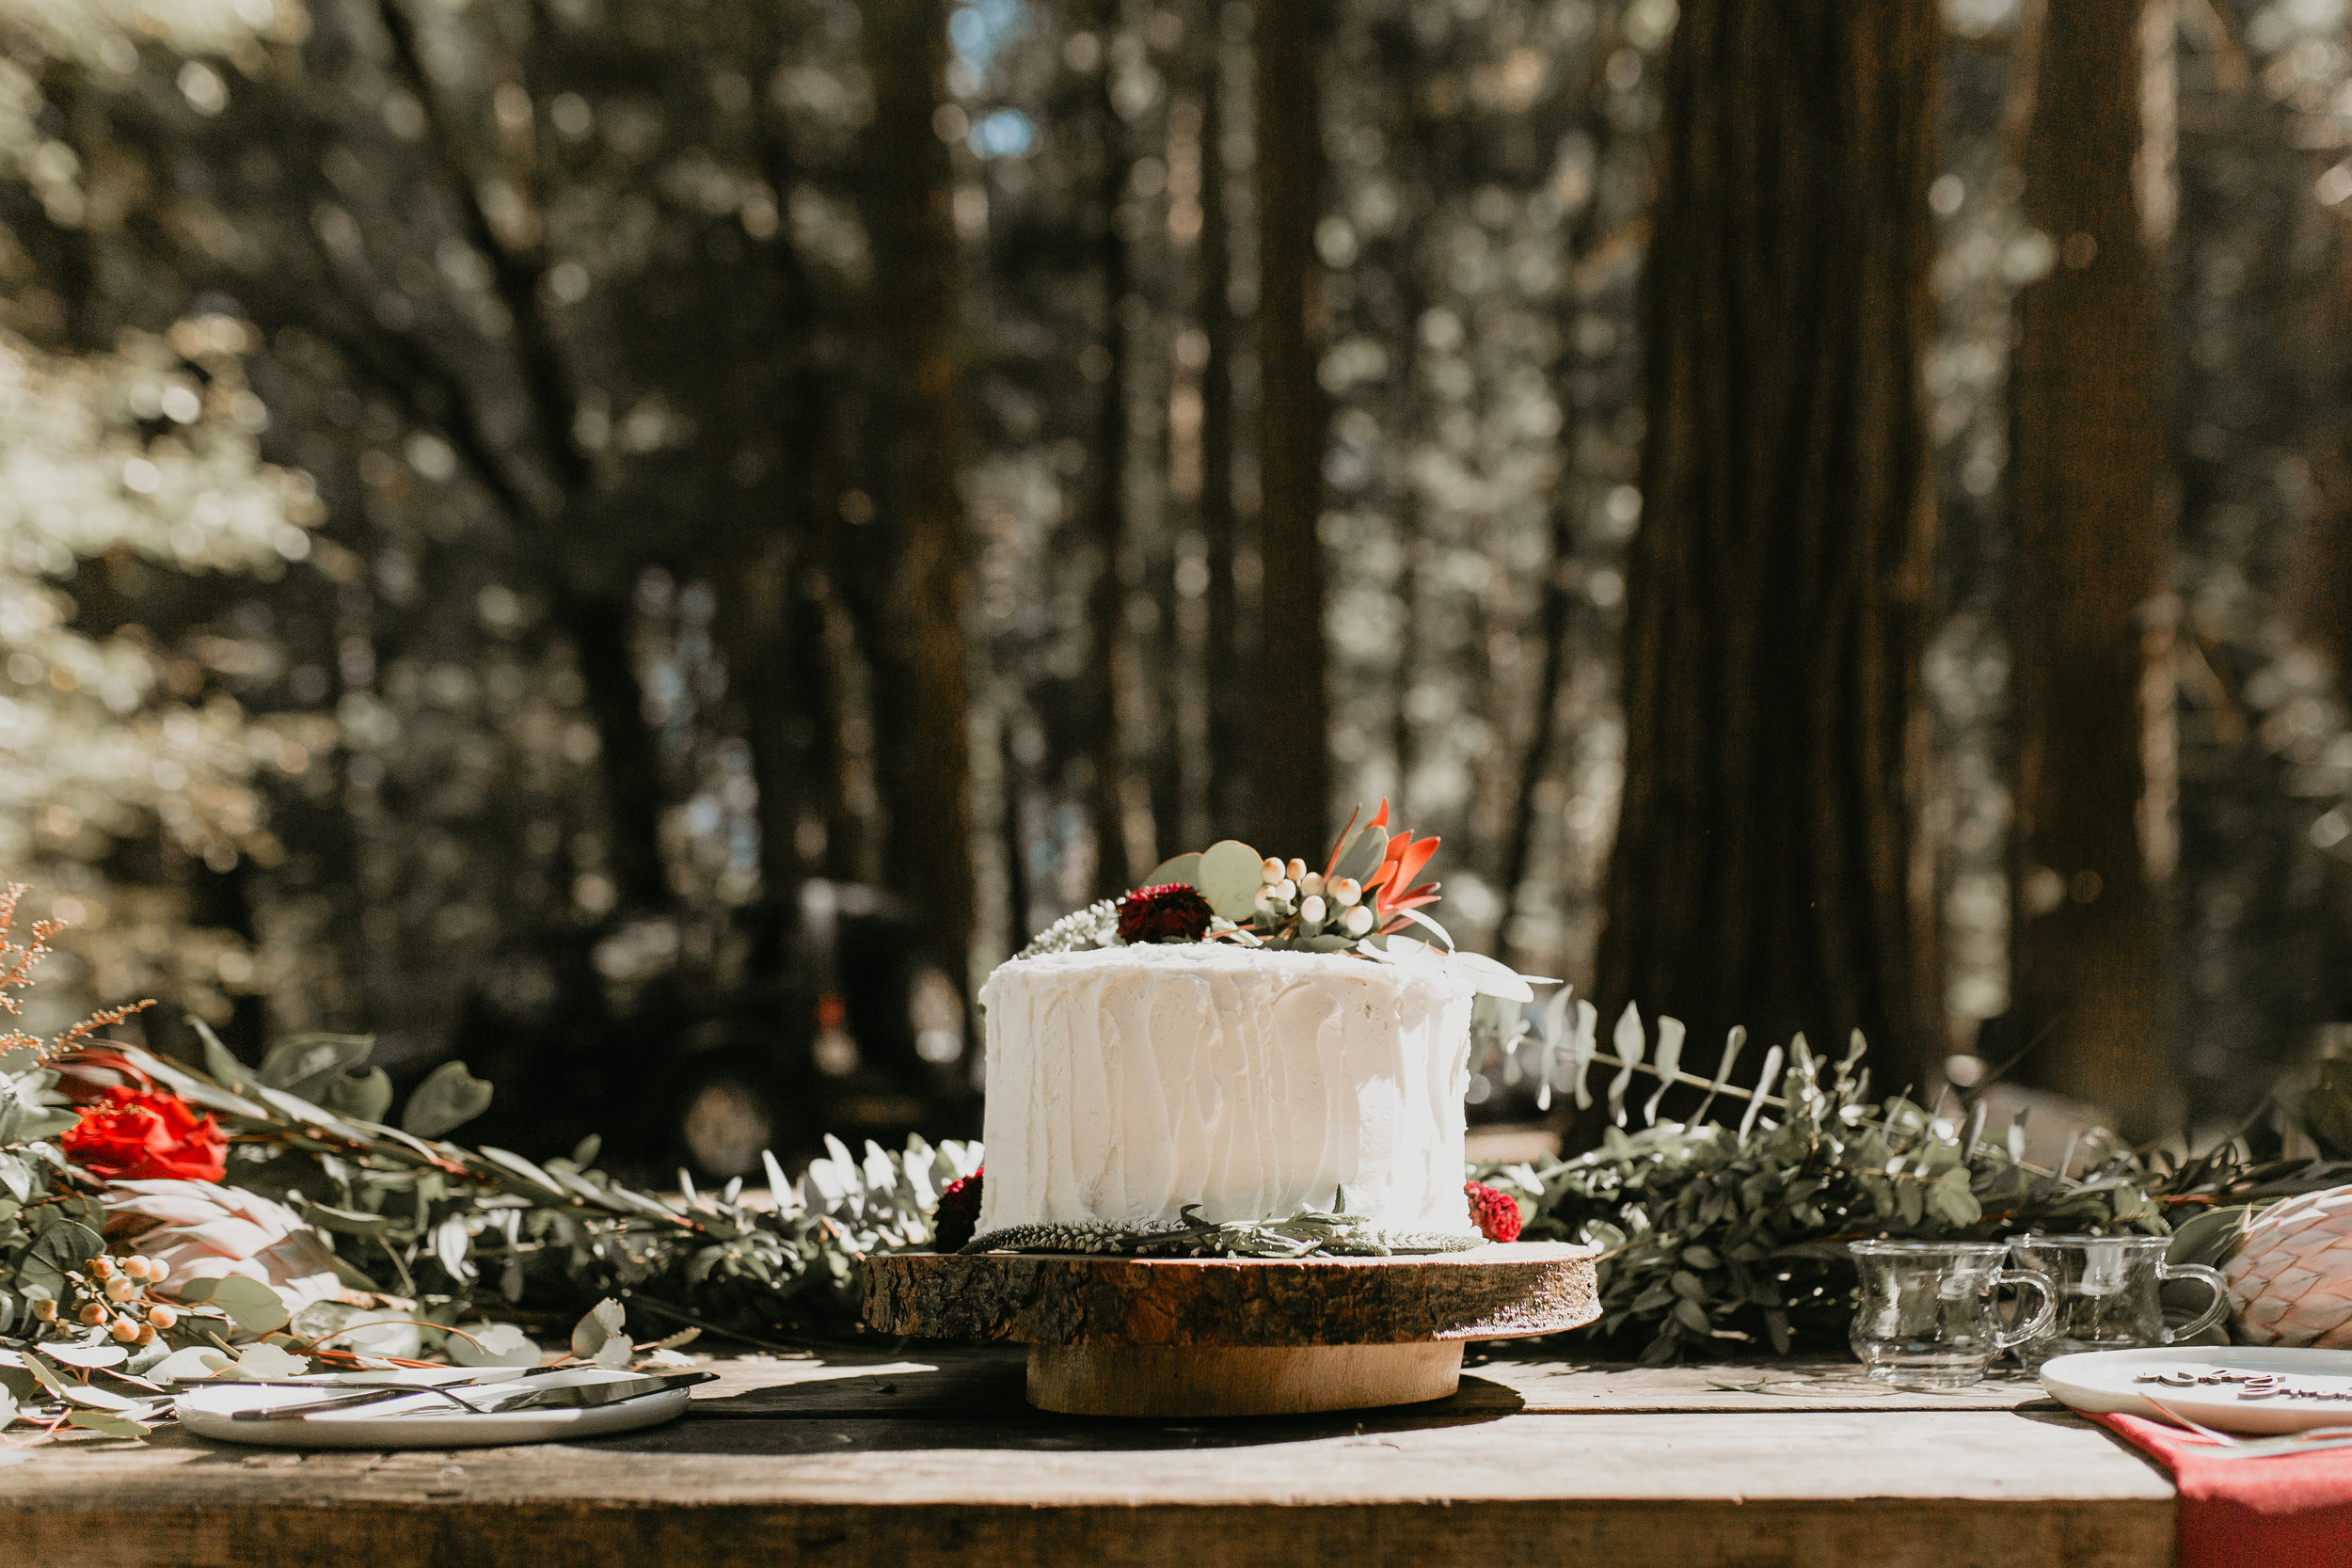 nicole-daacke-photography-intimate-elopement-wedding-yosemite-national-park-california-taft-point-sunset-photos-yosemite-valley-tunnel-view-first-look-sunrise-golden-granite-hiking-adventure-wedding-adventurous-elopement-photographer-63.jpg